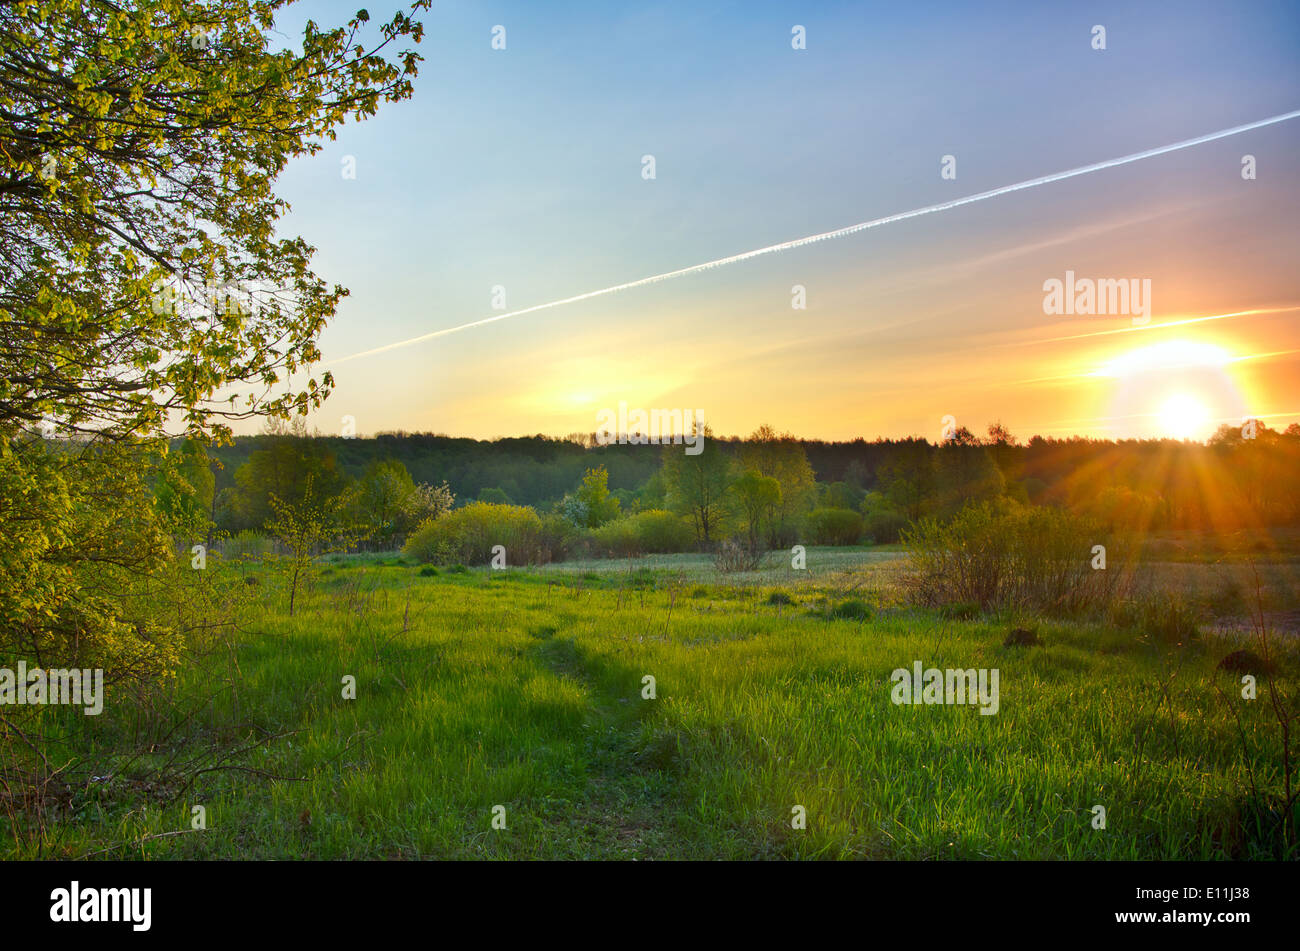 Landscape with the sun rising over the green spring meadow and lines from the aircraft in the sky - Stock Image